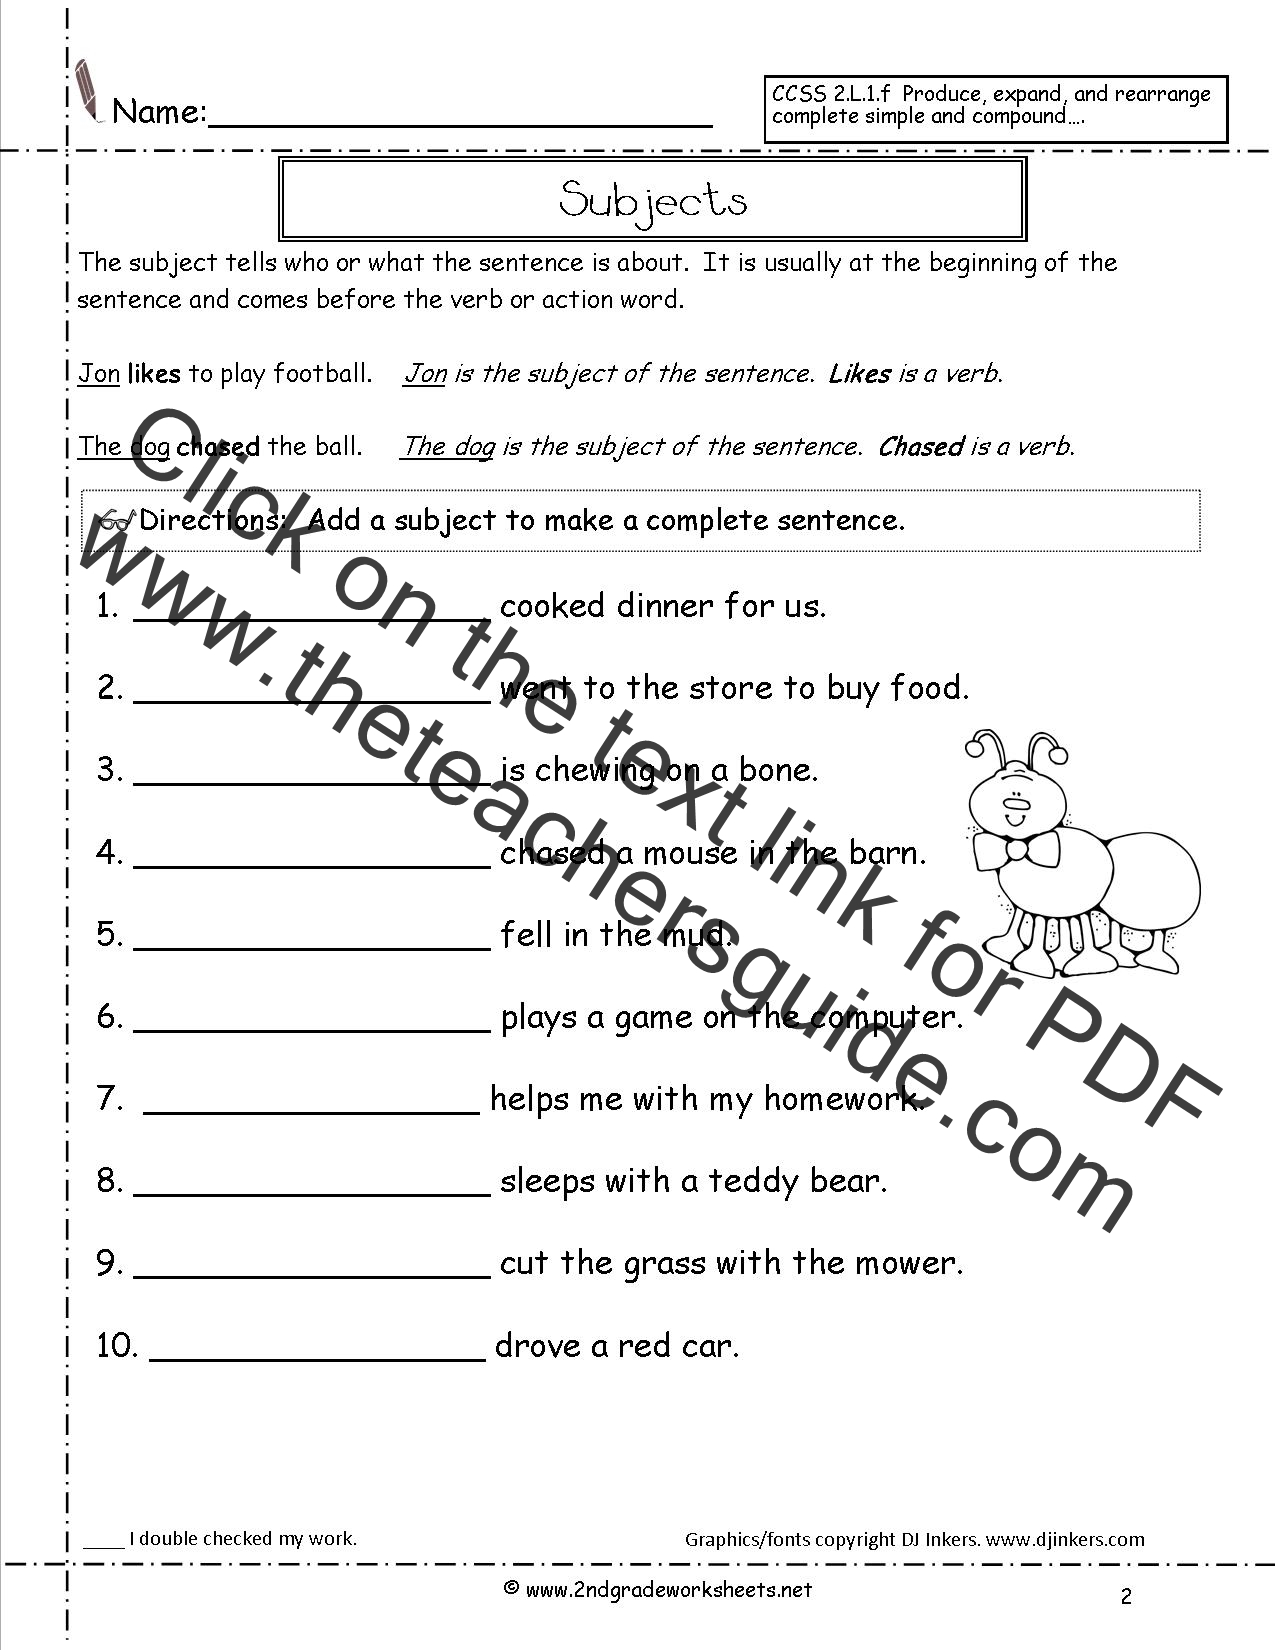 Worksheets Four Kinds Of Sentences Worksheets second grade sentences worksheets ccss 2 l 1 f subjects worksheet sentence subjects